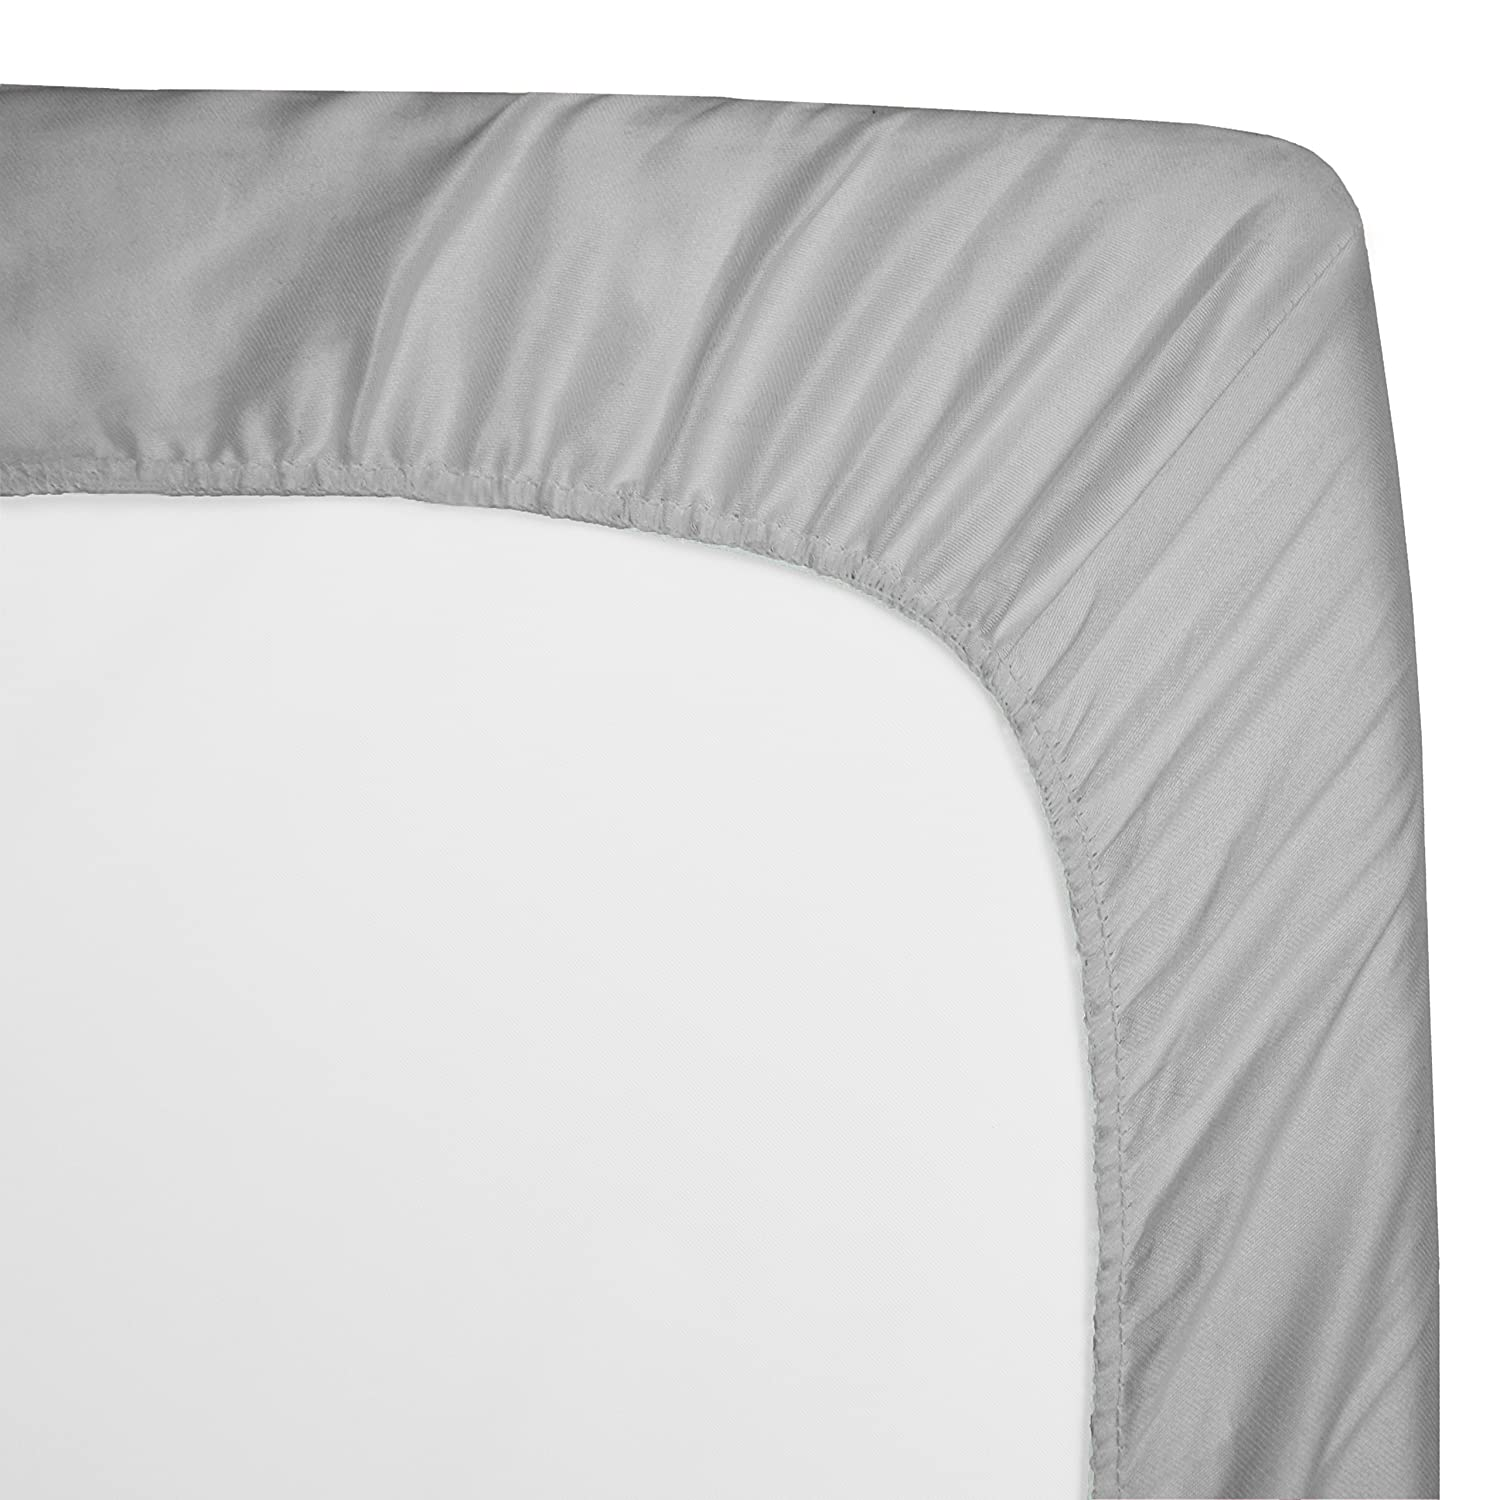 American Baby Company 100/%  Natural Cotton Percale Fitted Crib Sheet for Standard Crib and Toddler Mattresses White for Boys and Girls Soft Breathable